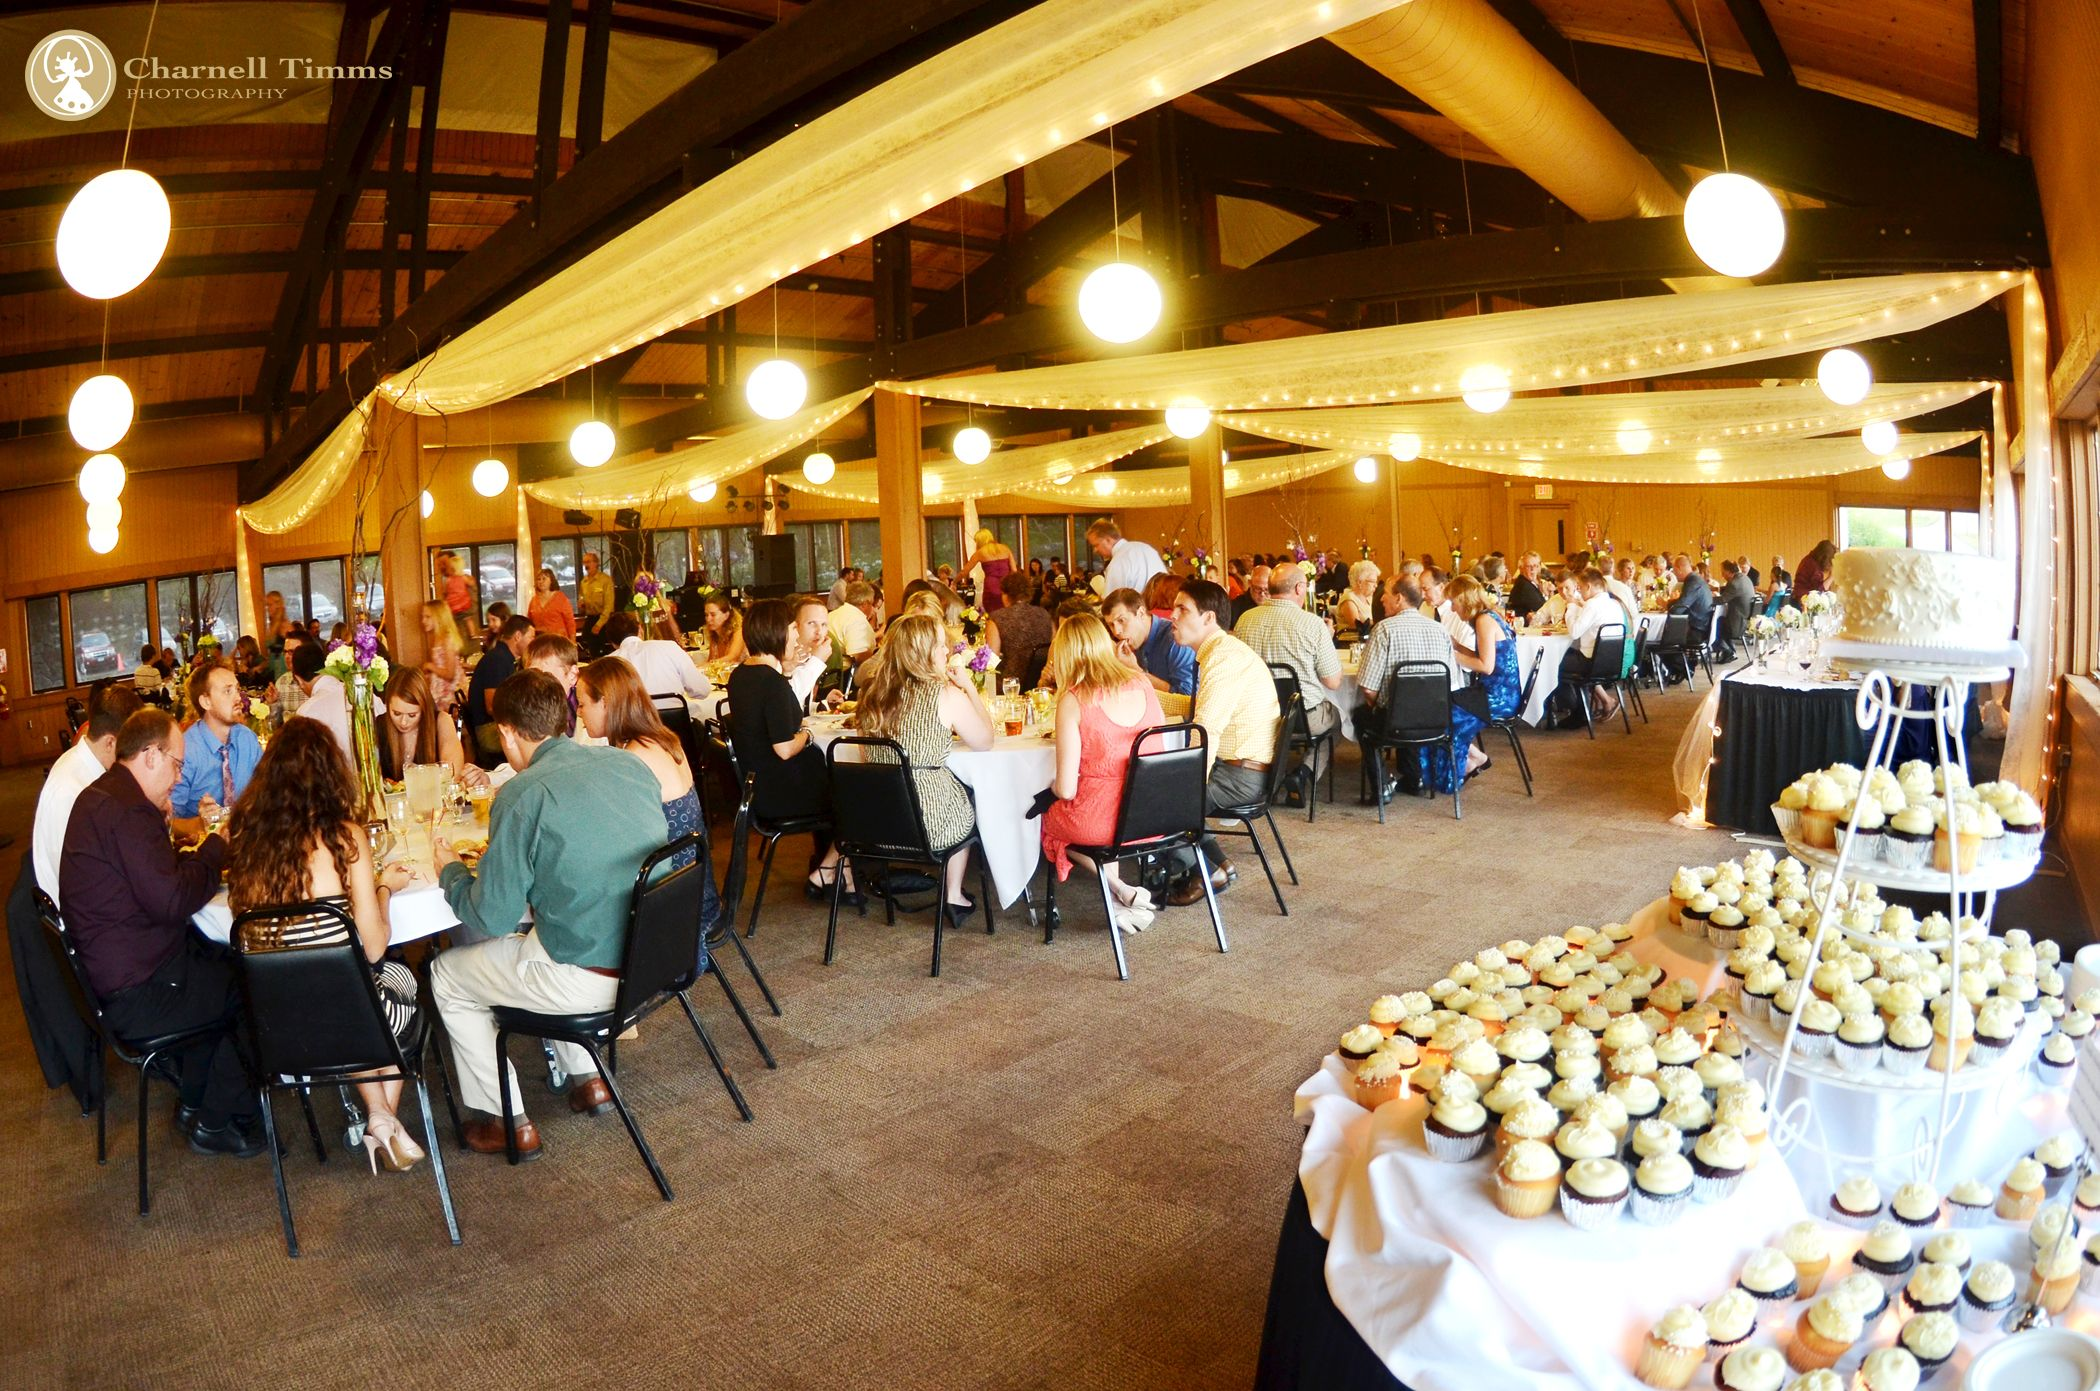 spacious wedding venue seating over 300 guests at spirit mountain duluth charnell timms photography